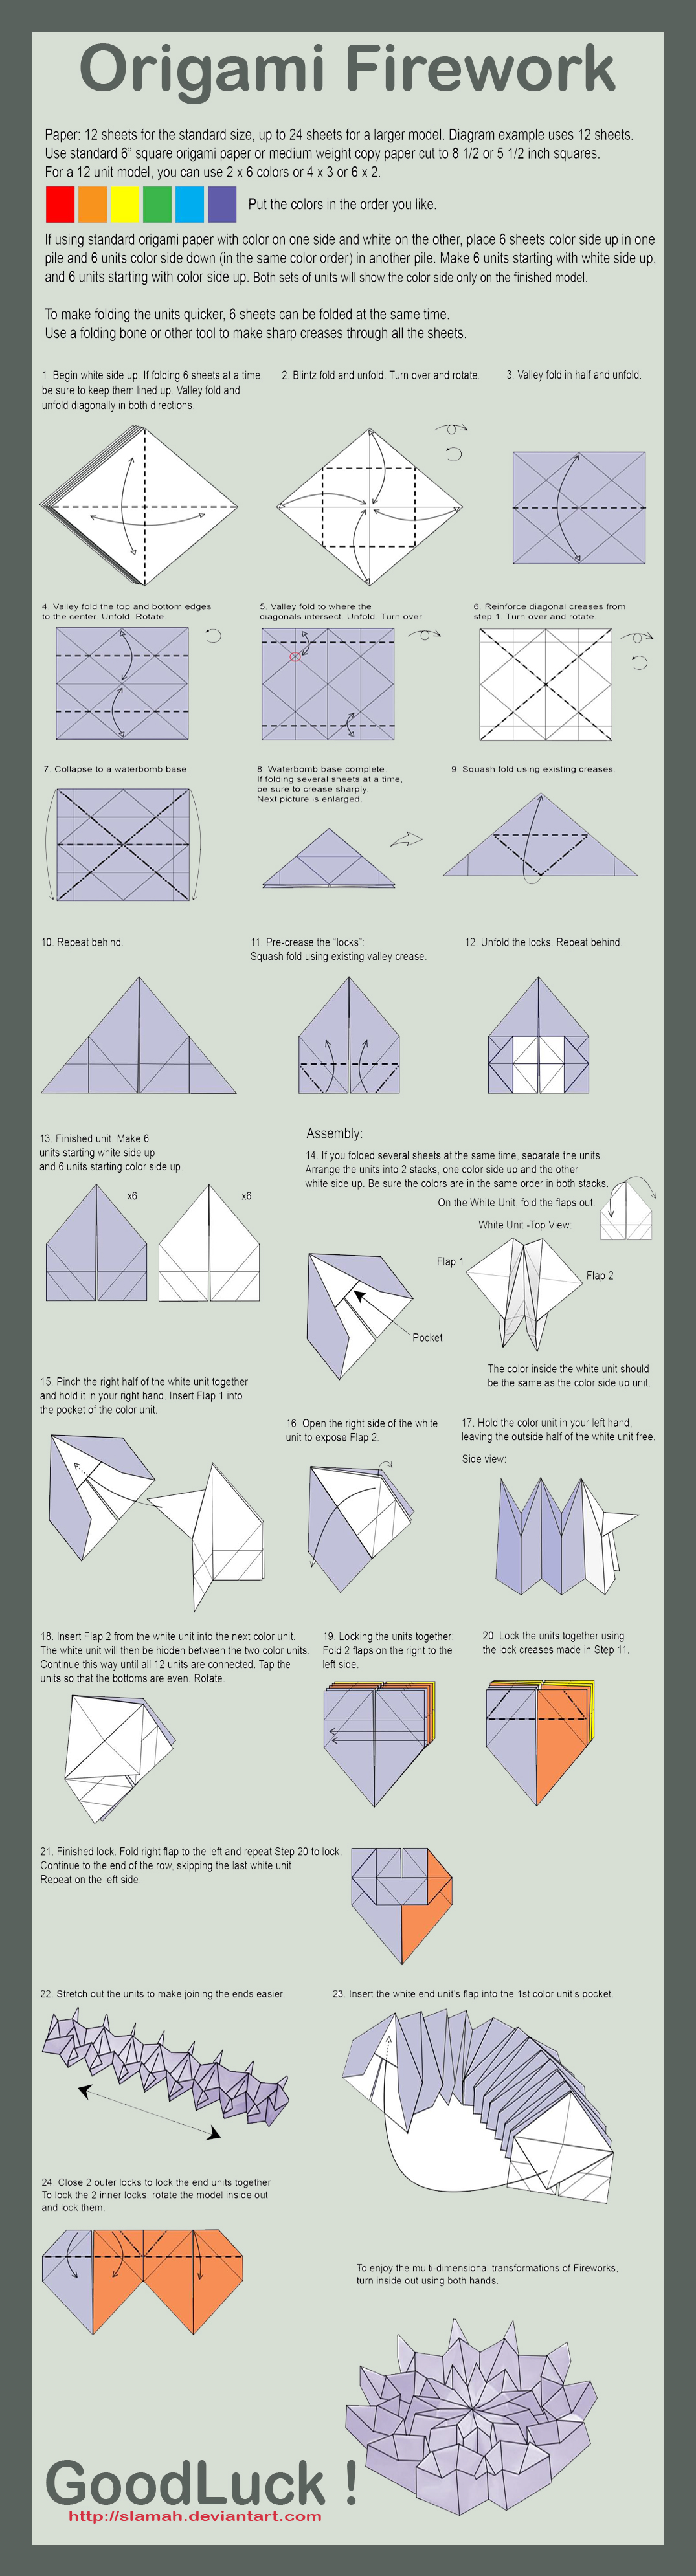 Origami Step By Step Instruction